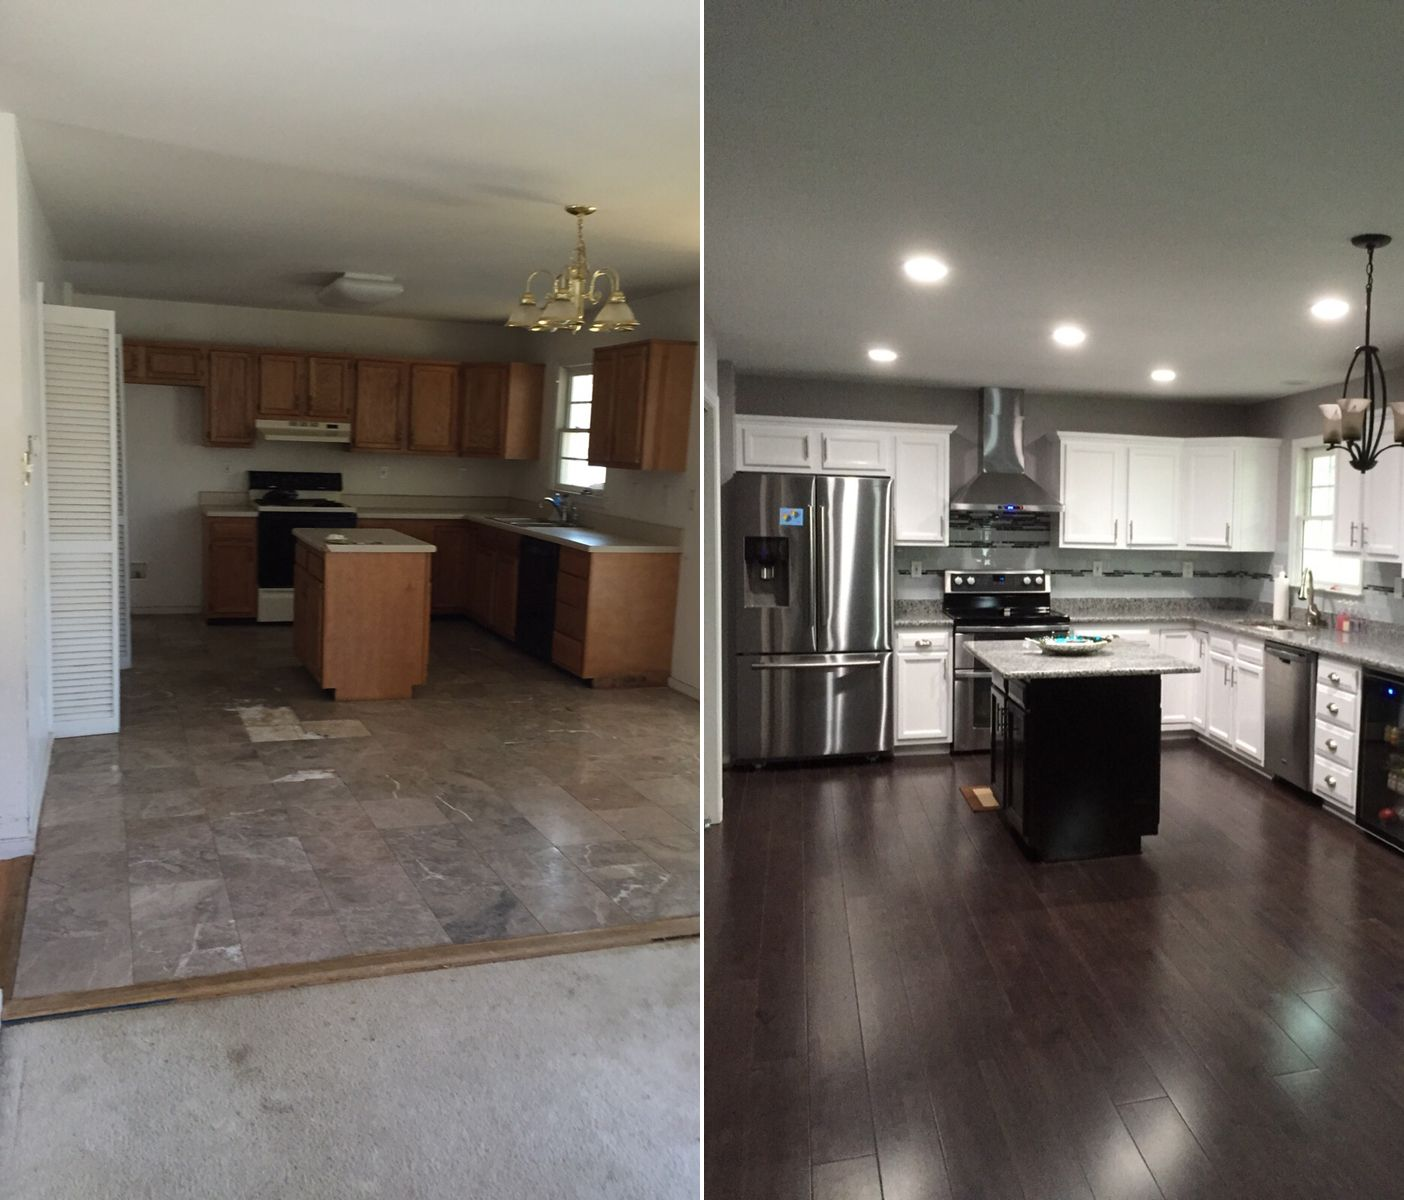 Home Remodeling: Dream Kitchen Remodel: Before + After Espresso Hevea